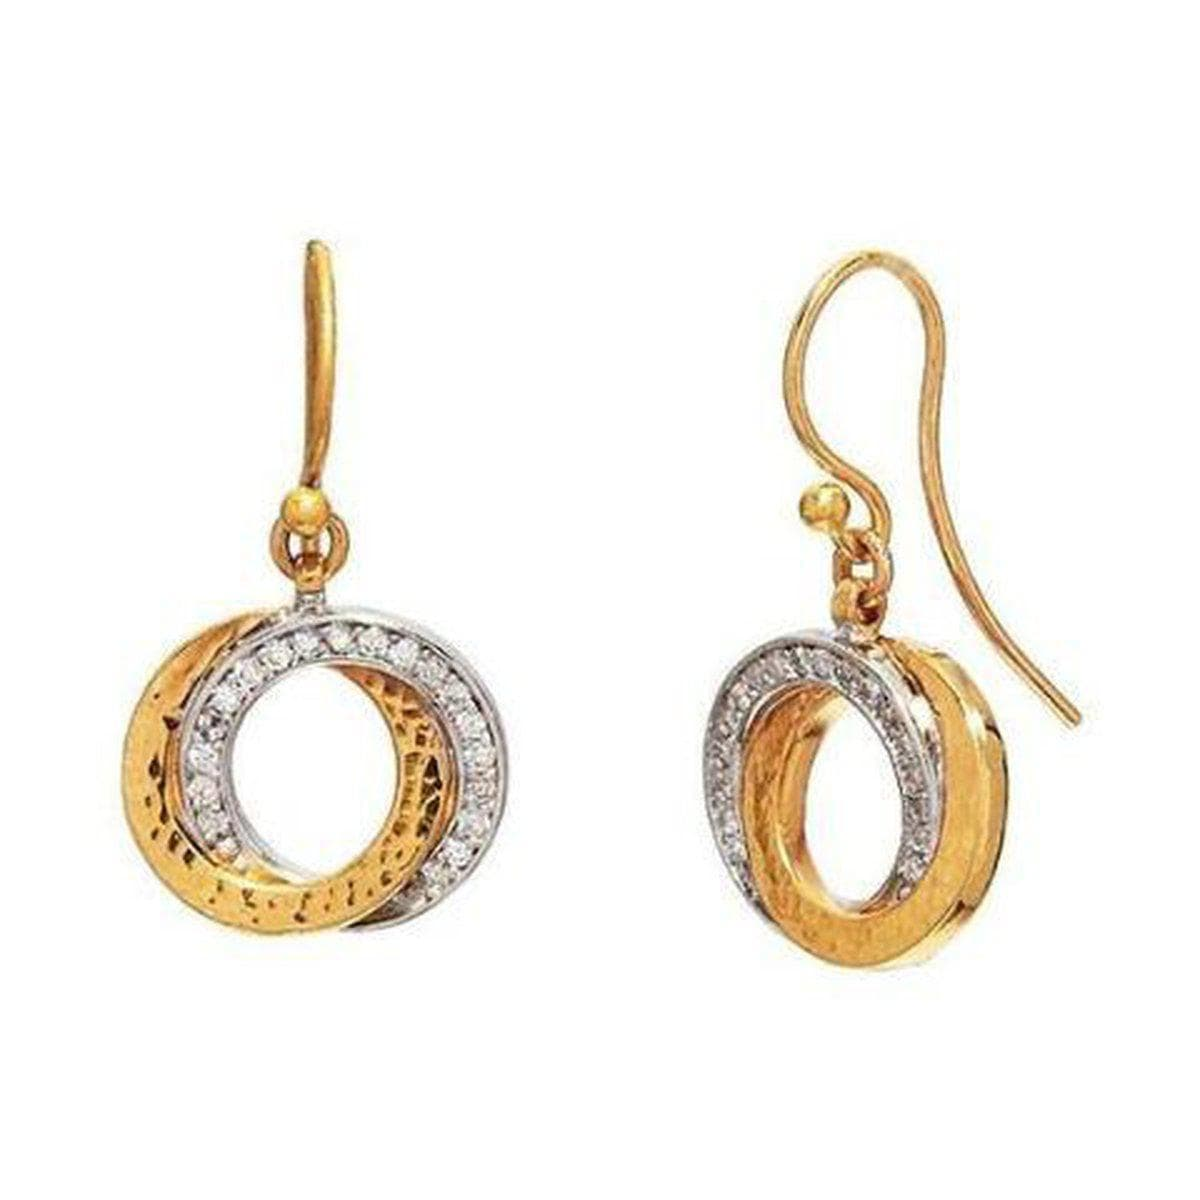 Duet 22K Gold White Diamond Earrings - LTE-INT-2RD-H-19DI-GURHAN-Renee Taylor Gallery